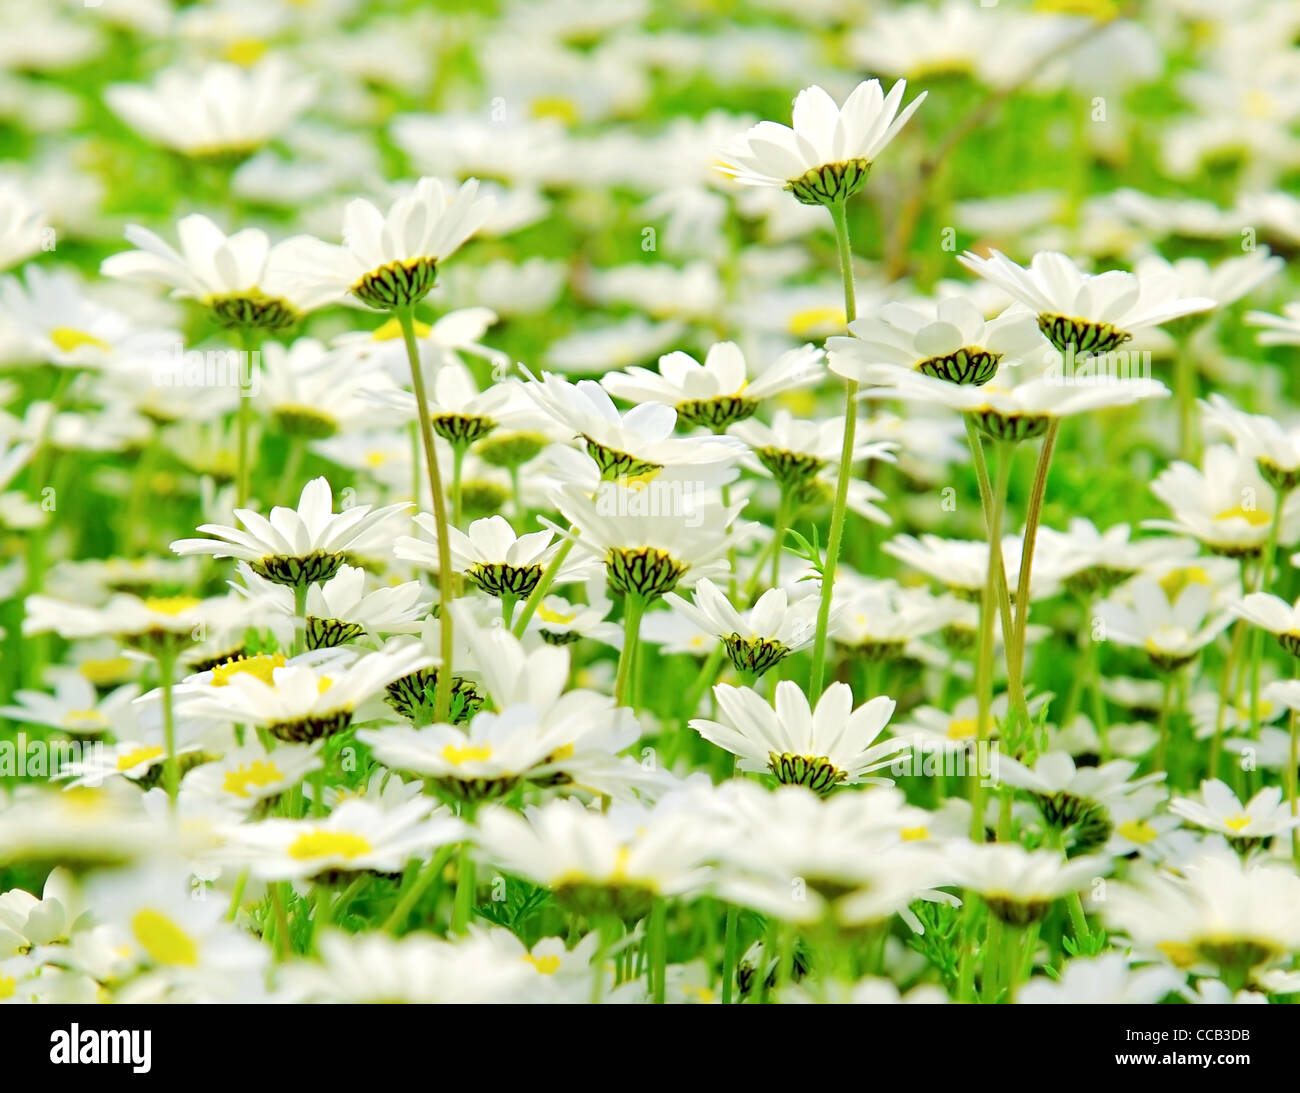 Spring Meadow Of White Fresh Daisy Flowers Natural Landscape Stock